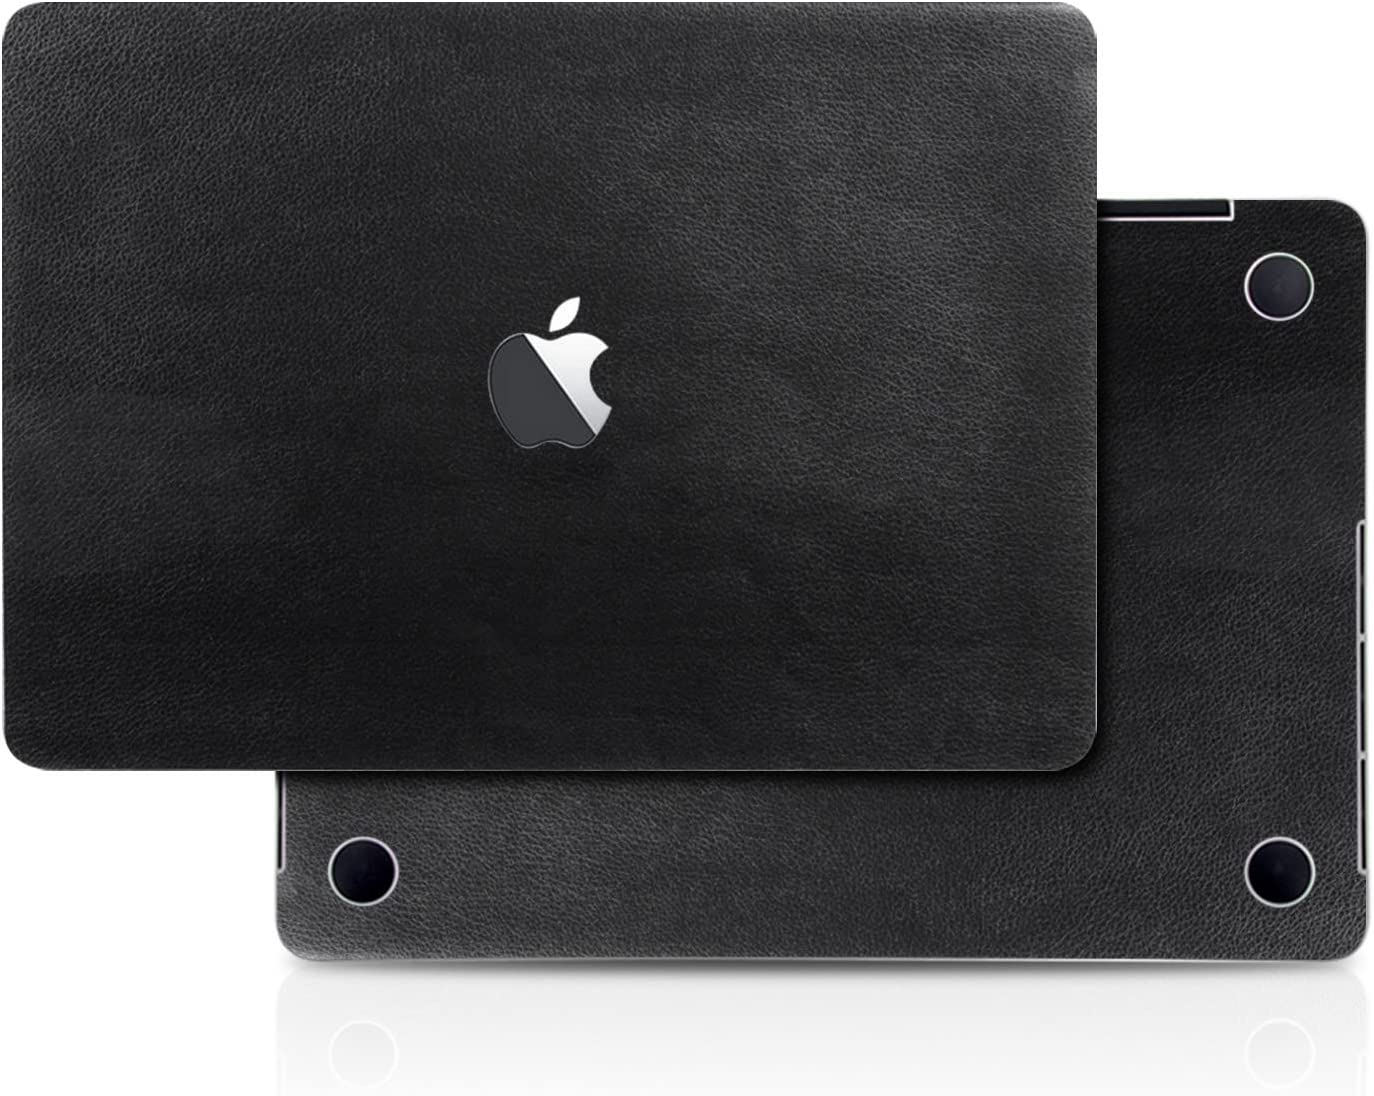 Black Leather Texture Skin Decal (4-in-1) Full-Size 360° Protector Cover Apple MacBook Pro 13 Inch A1706 A1708 A1989 (2016 to 2019 Model, with & w/o Touch Bar & ID) Black Keyboard Cover